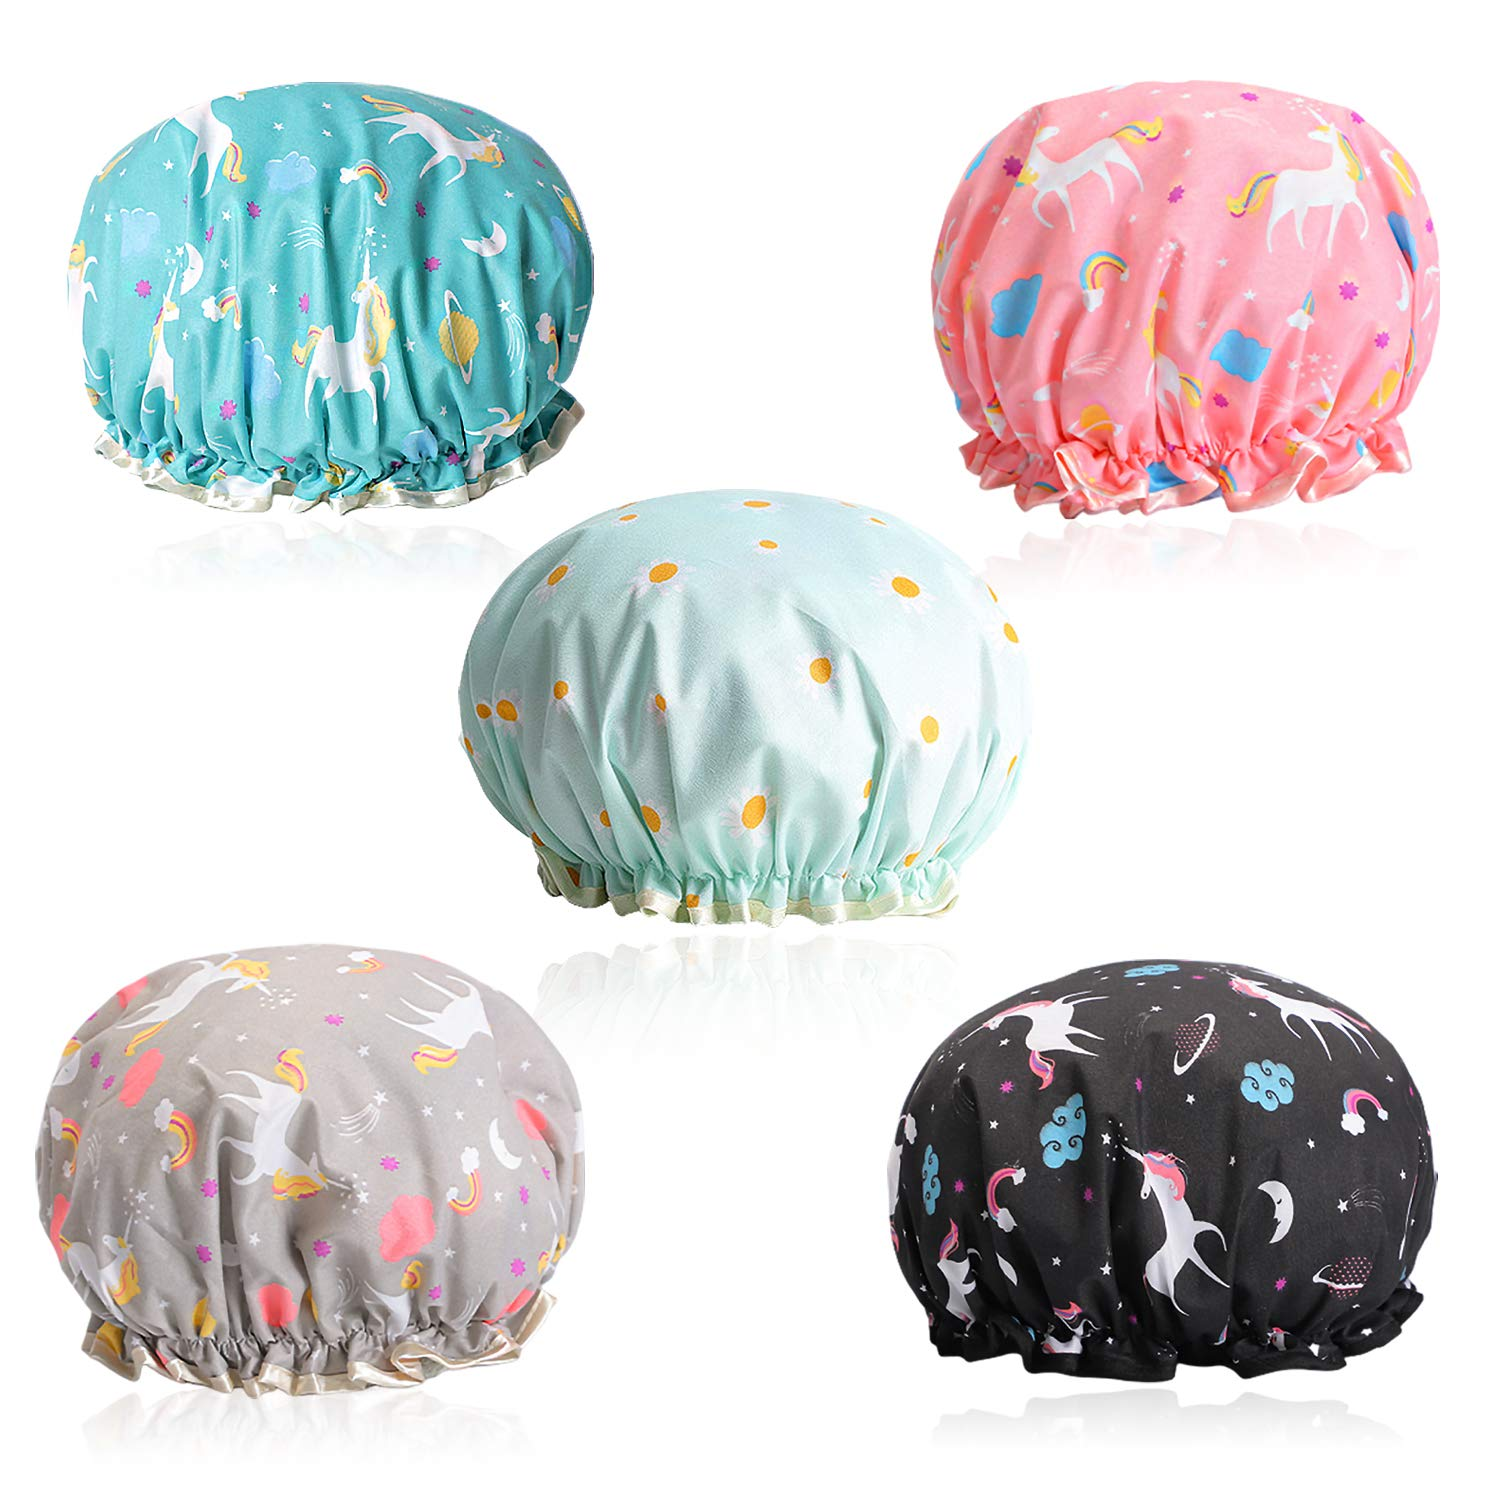 5 Pack Water-proof Shower Cap Bath Hat Bath Cap - Unicorn Reusable Double Layer Bath Hat Cover Long Thick Hair For Women Spa Hair Salon Home Hotel Travel